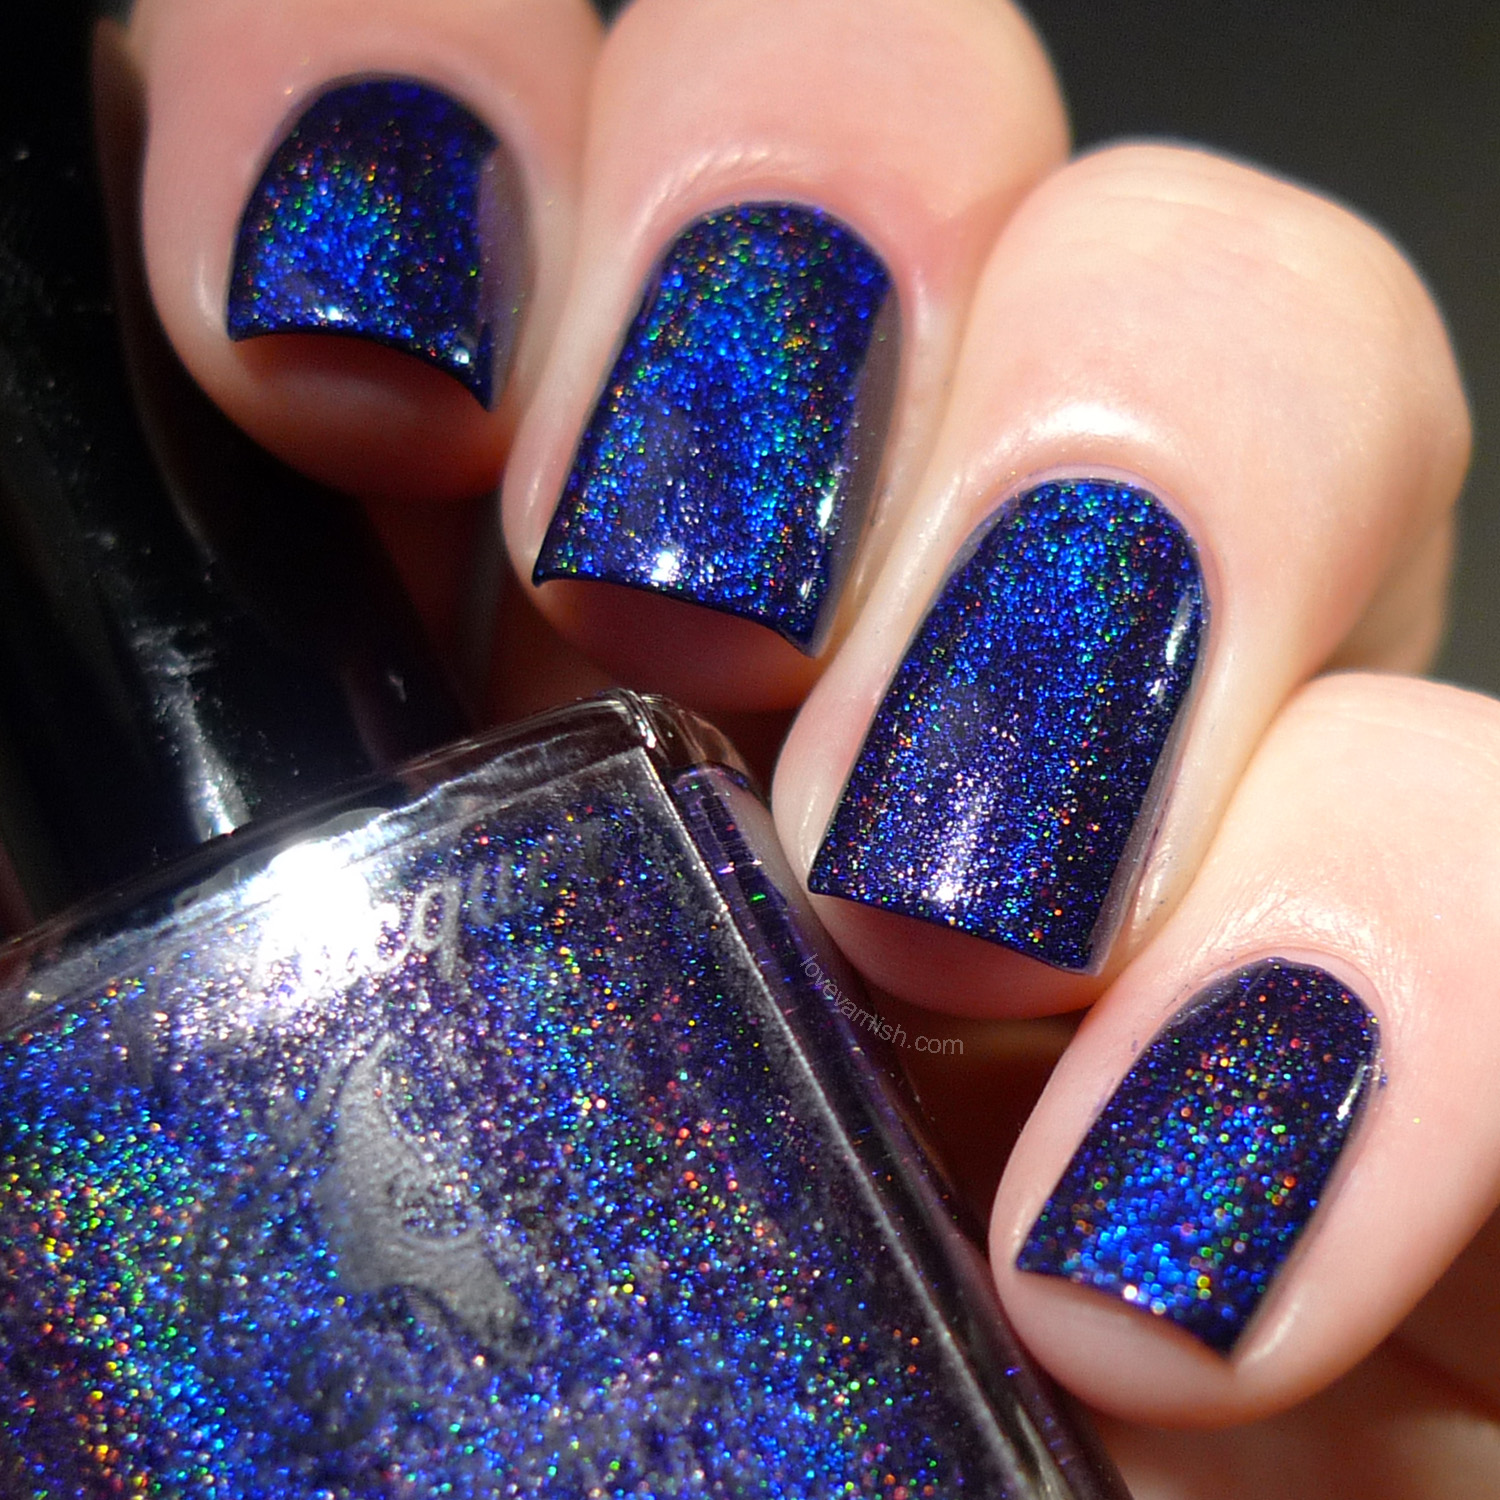 F.U.N Lacquer Summer 2014 Starry Night Of The Summer holographic